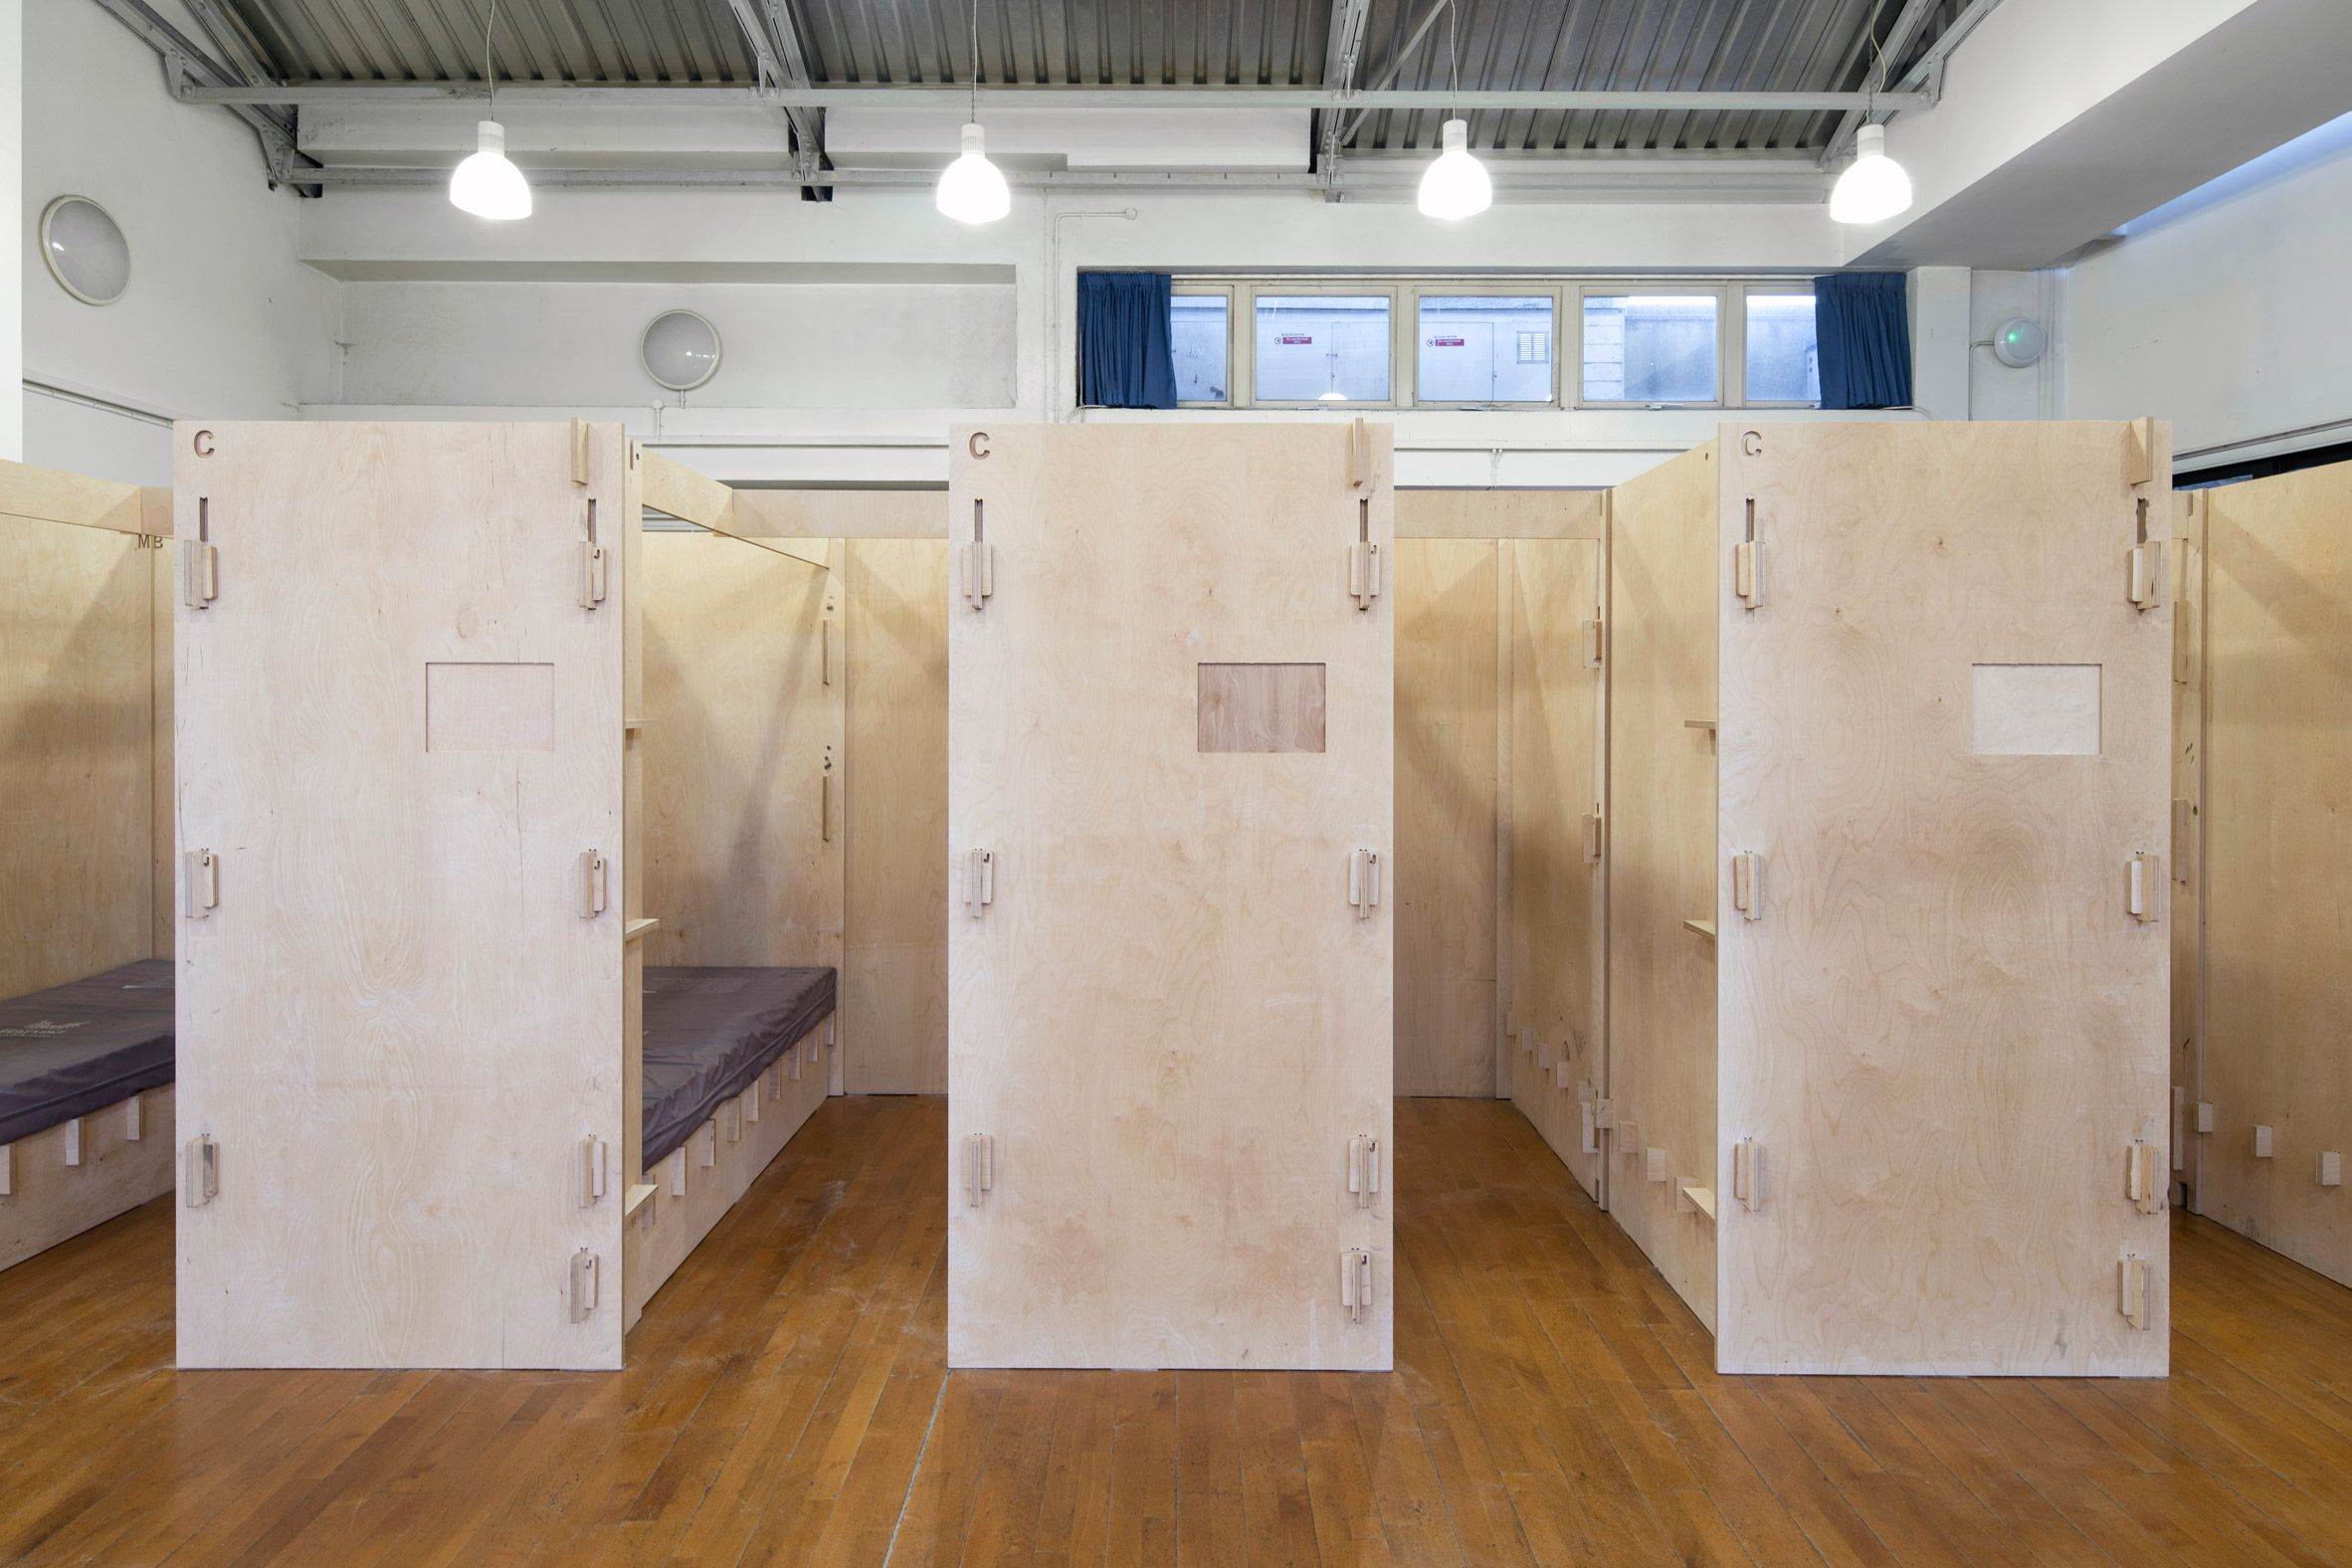 Commonweal Pods To Provide Beds For Homeless People London By Reed Watts Sleeping Pods Homeless Housing Built In Bunks